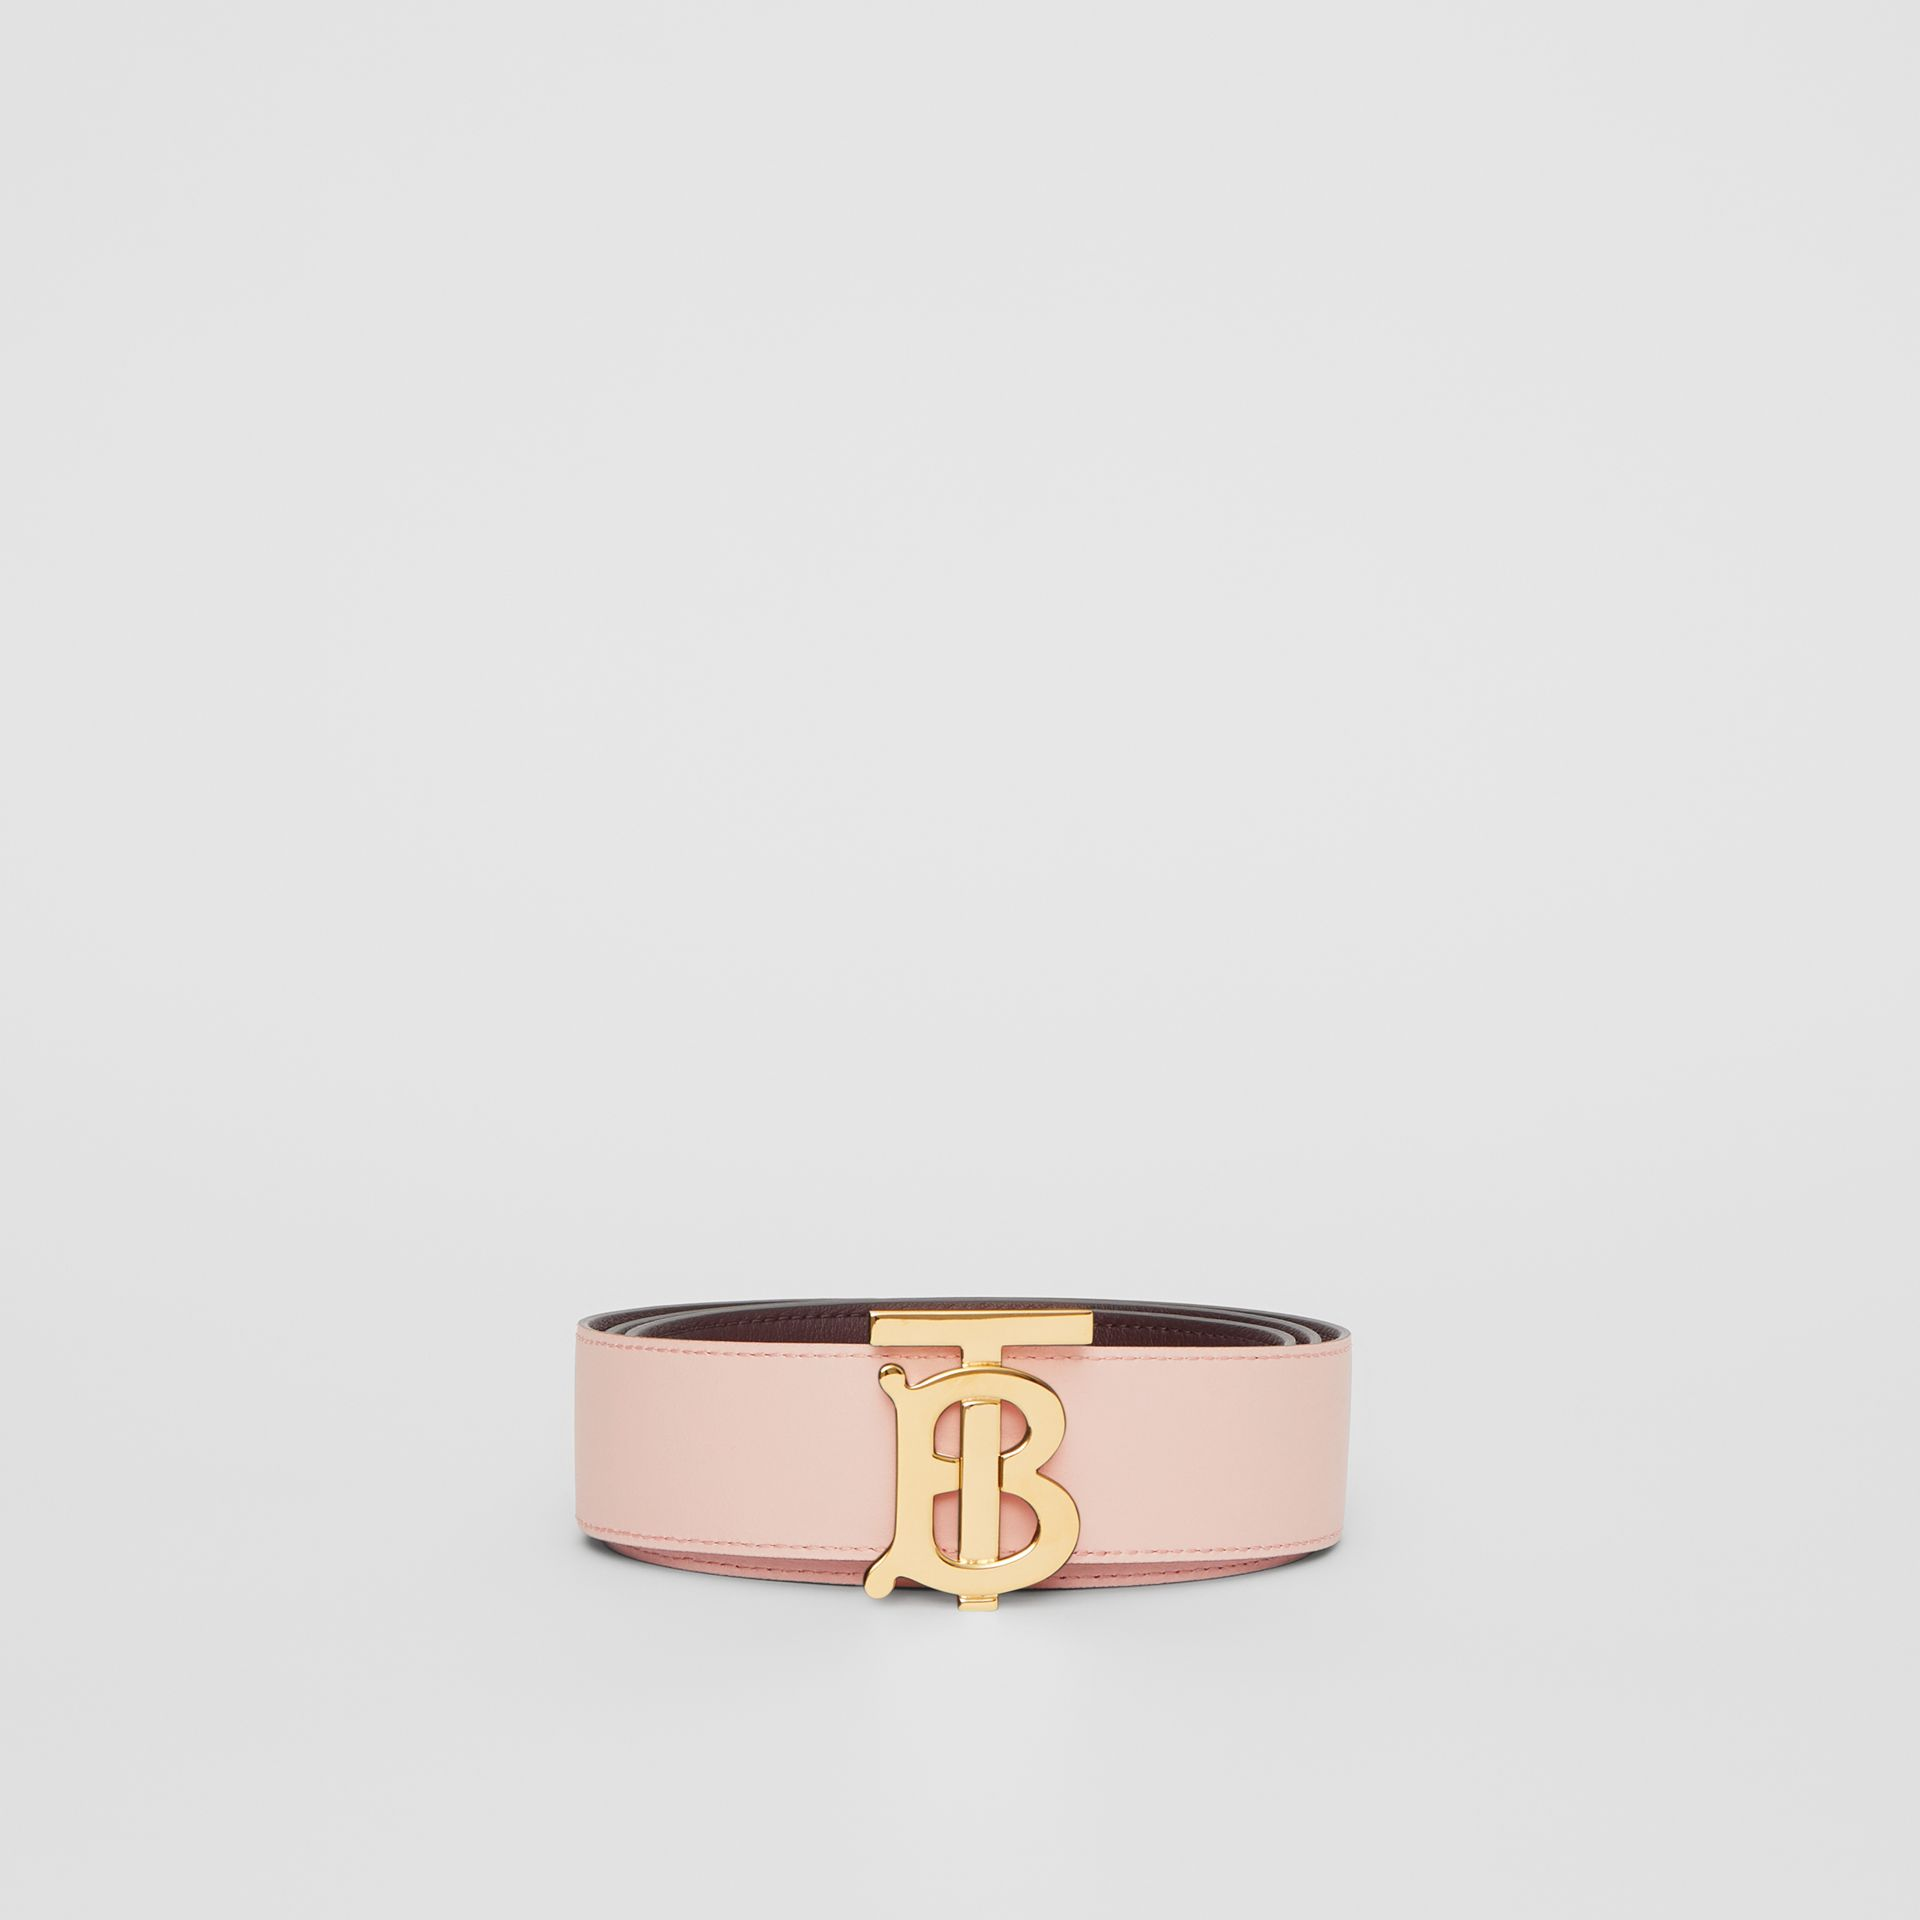 Reversible Monogram Motif Leather Belt in Oxblood/rose Beige - Women | Burberry United Kingdom - gallery image 7